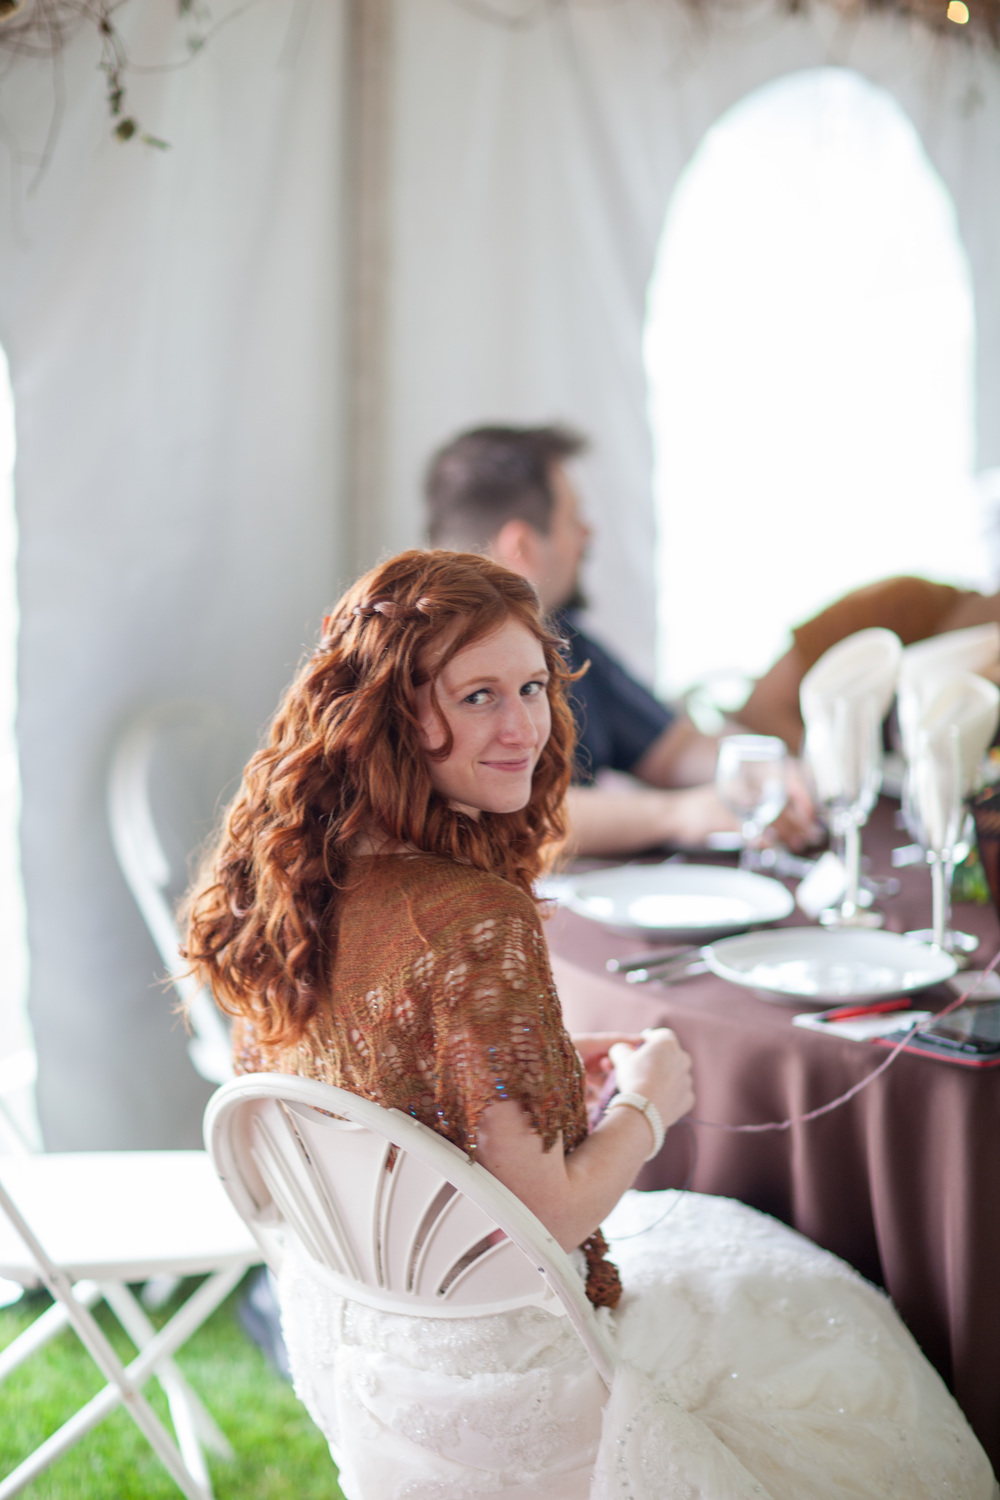 Of course I'm knitting at my reception. Copyright OMG Photography